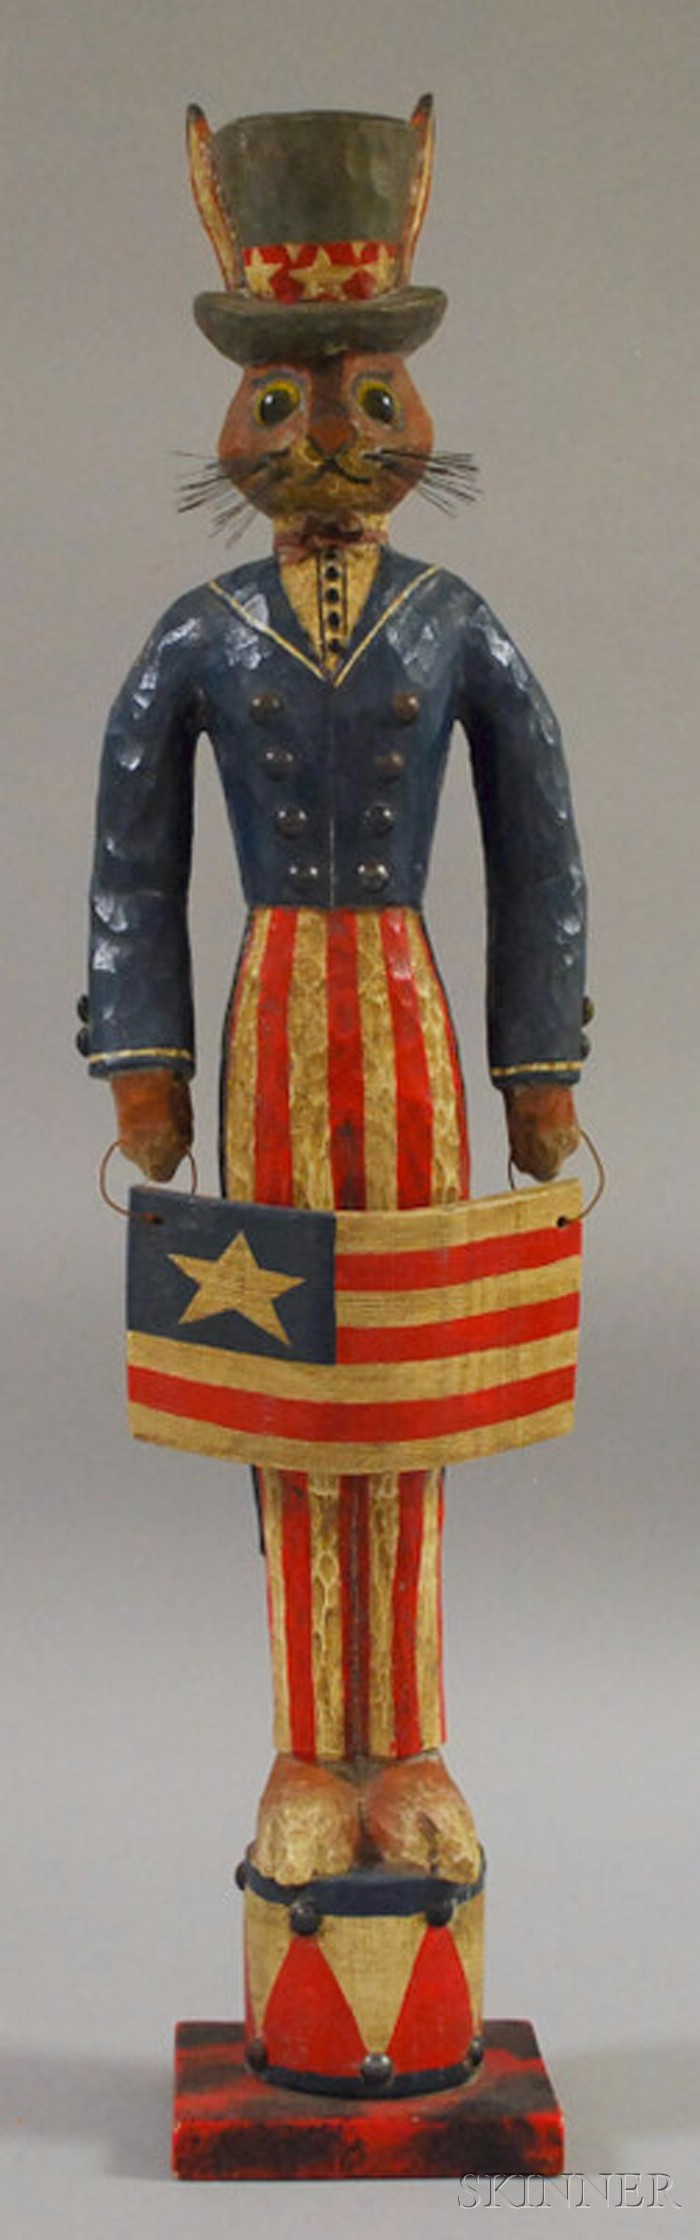 """P. Schifferl Folk Art Carved and Painted Wood """"Uncle Sam"""" Rabbit Figure"""